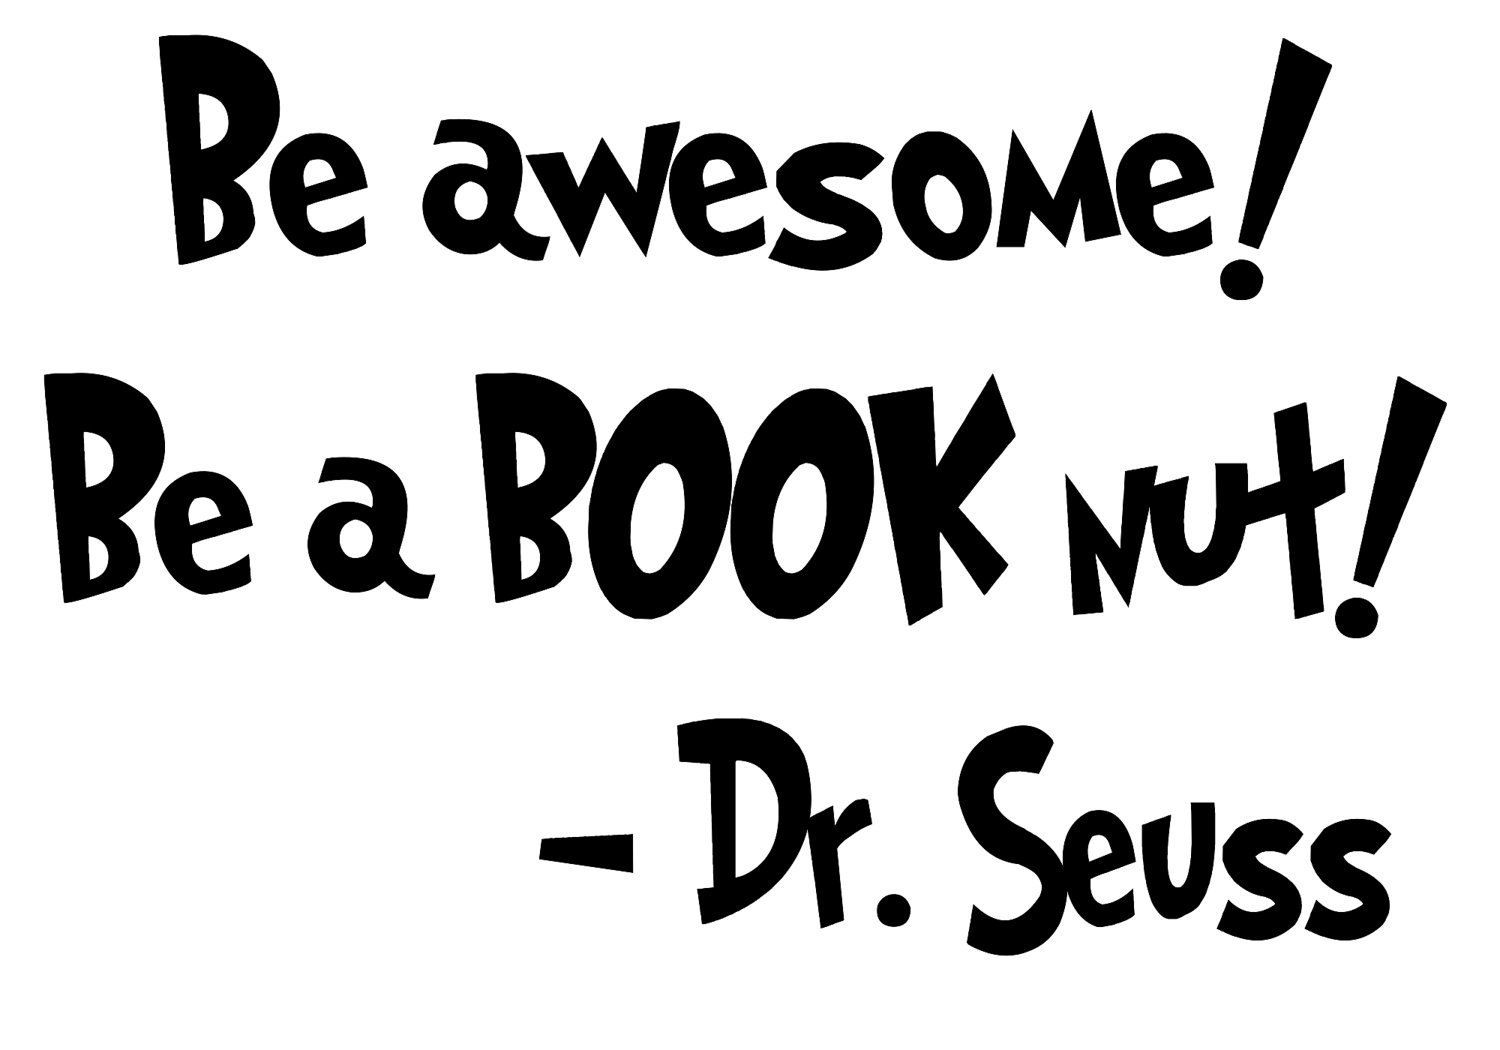 Dr seuss quotes reading quotesgram by quotesgram - Reading quotes pinterest ...